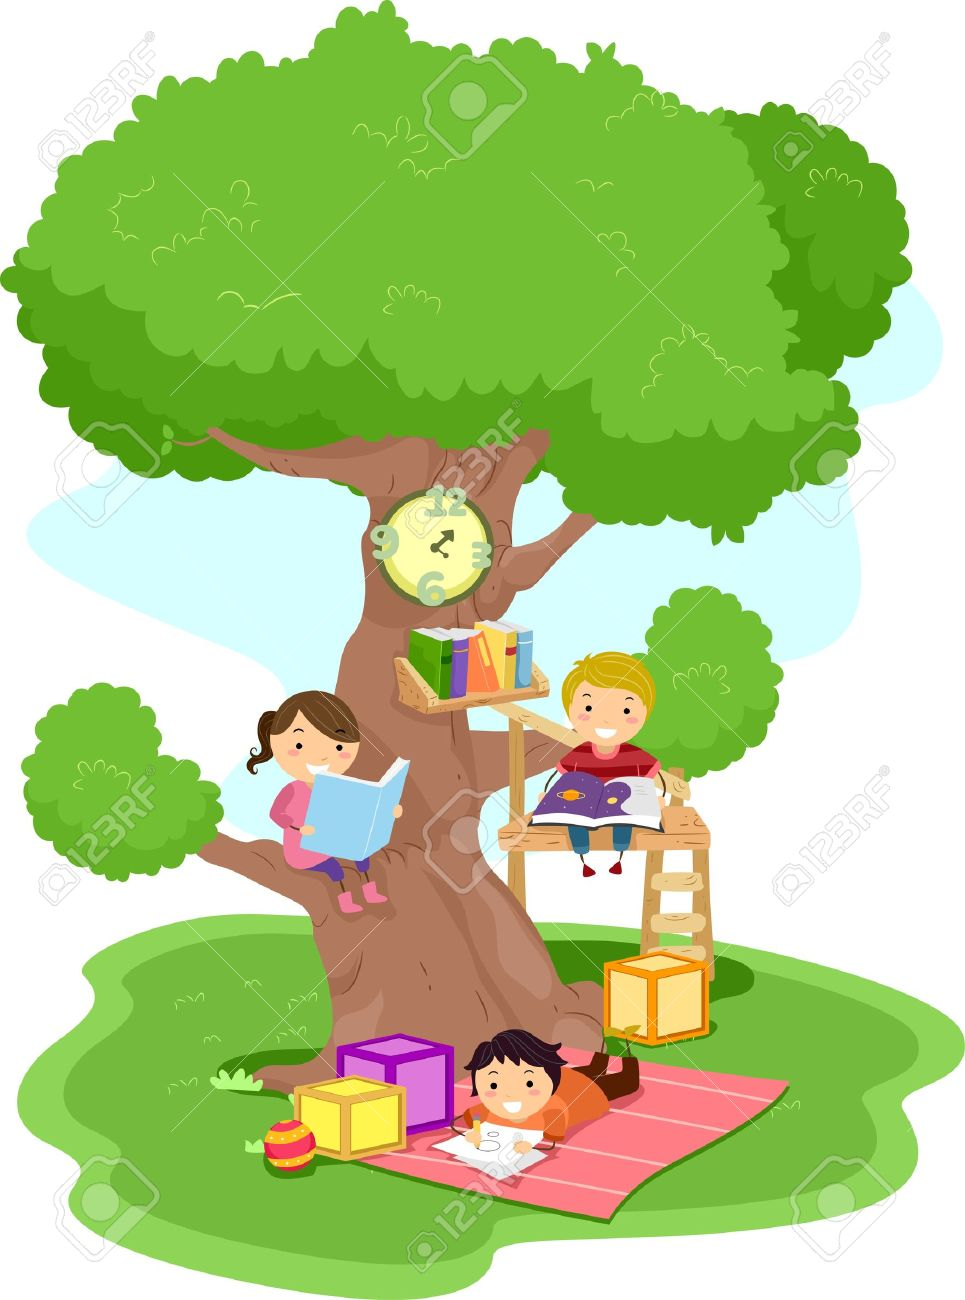 illustration of kids reading in a treehouse stock photo picture